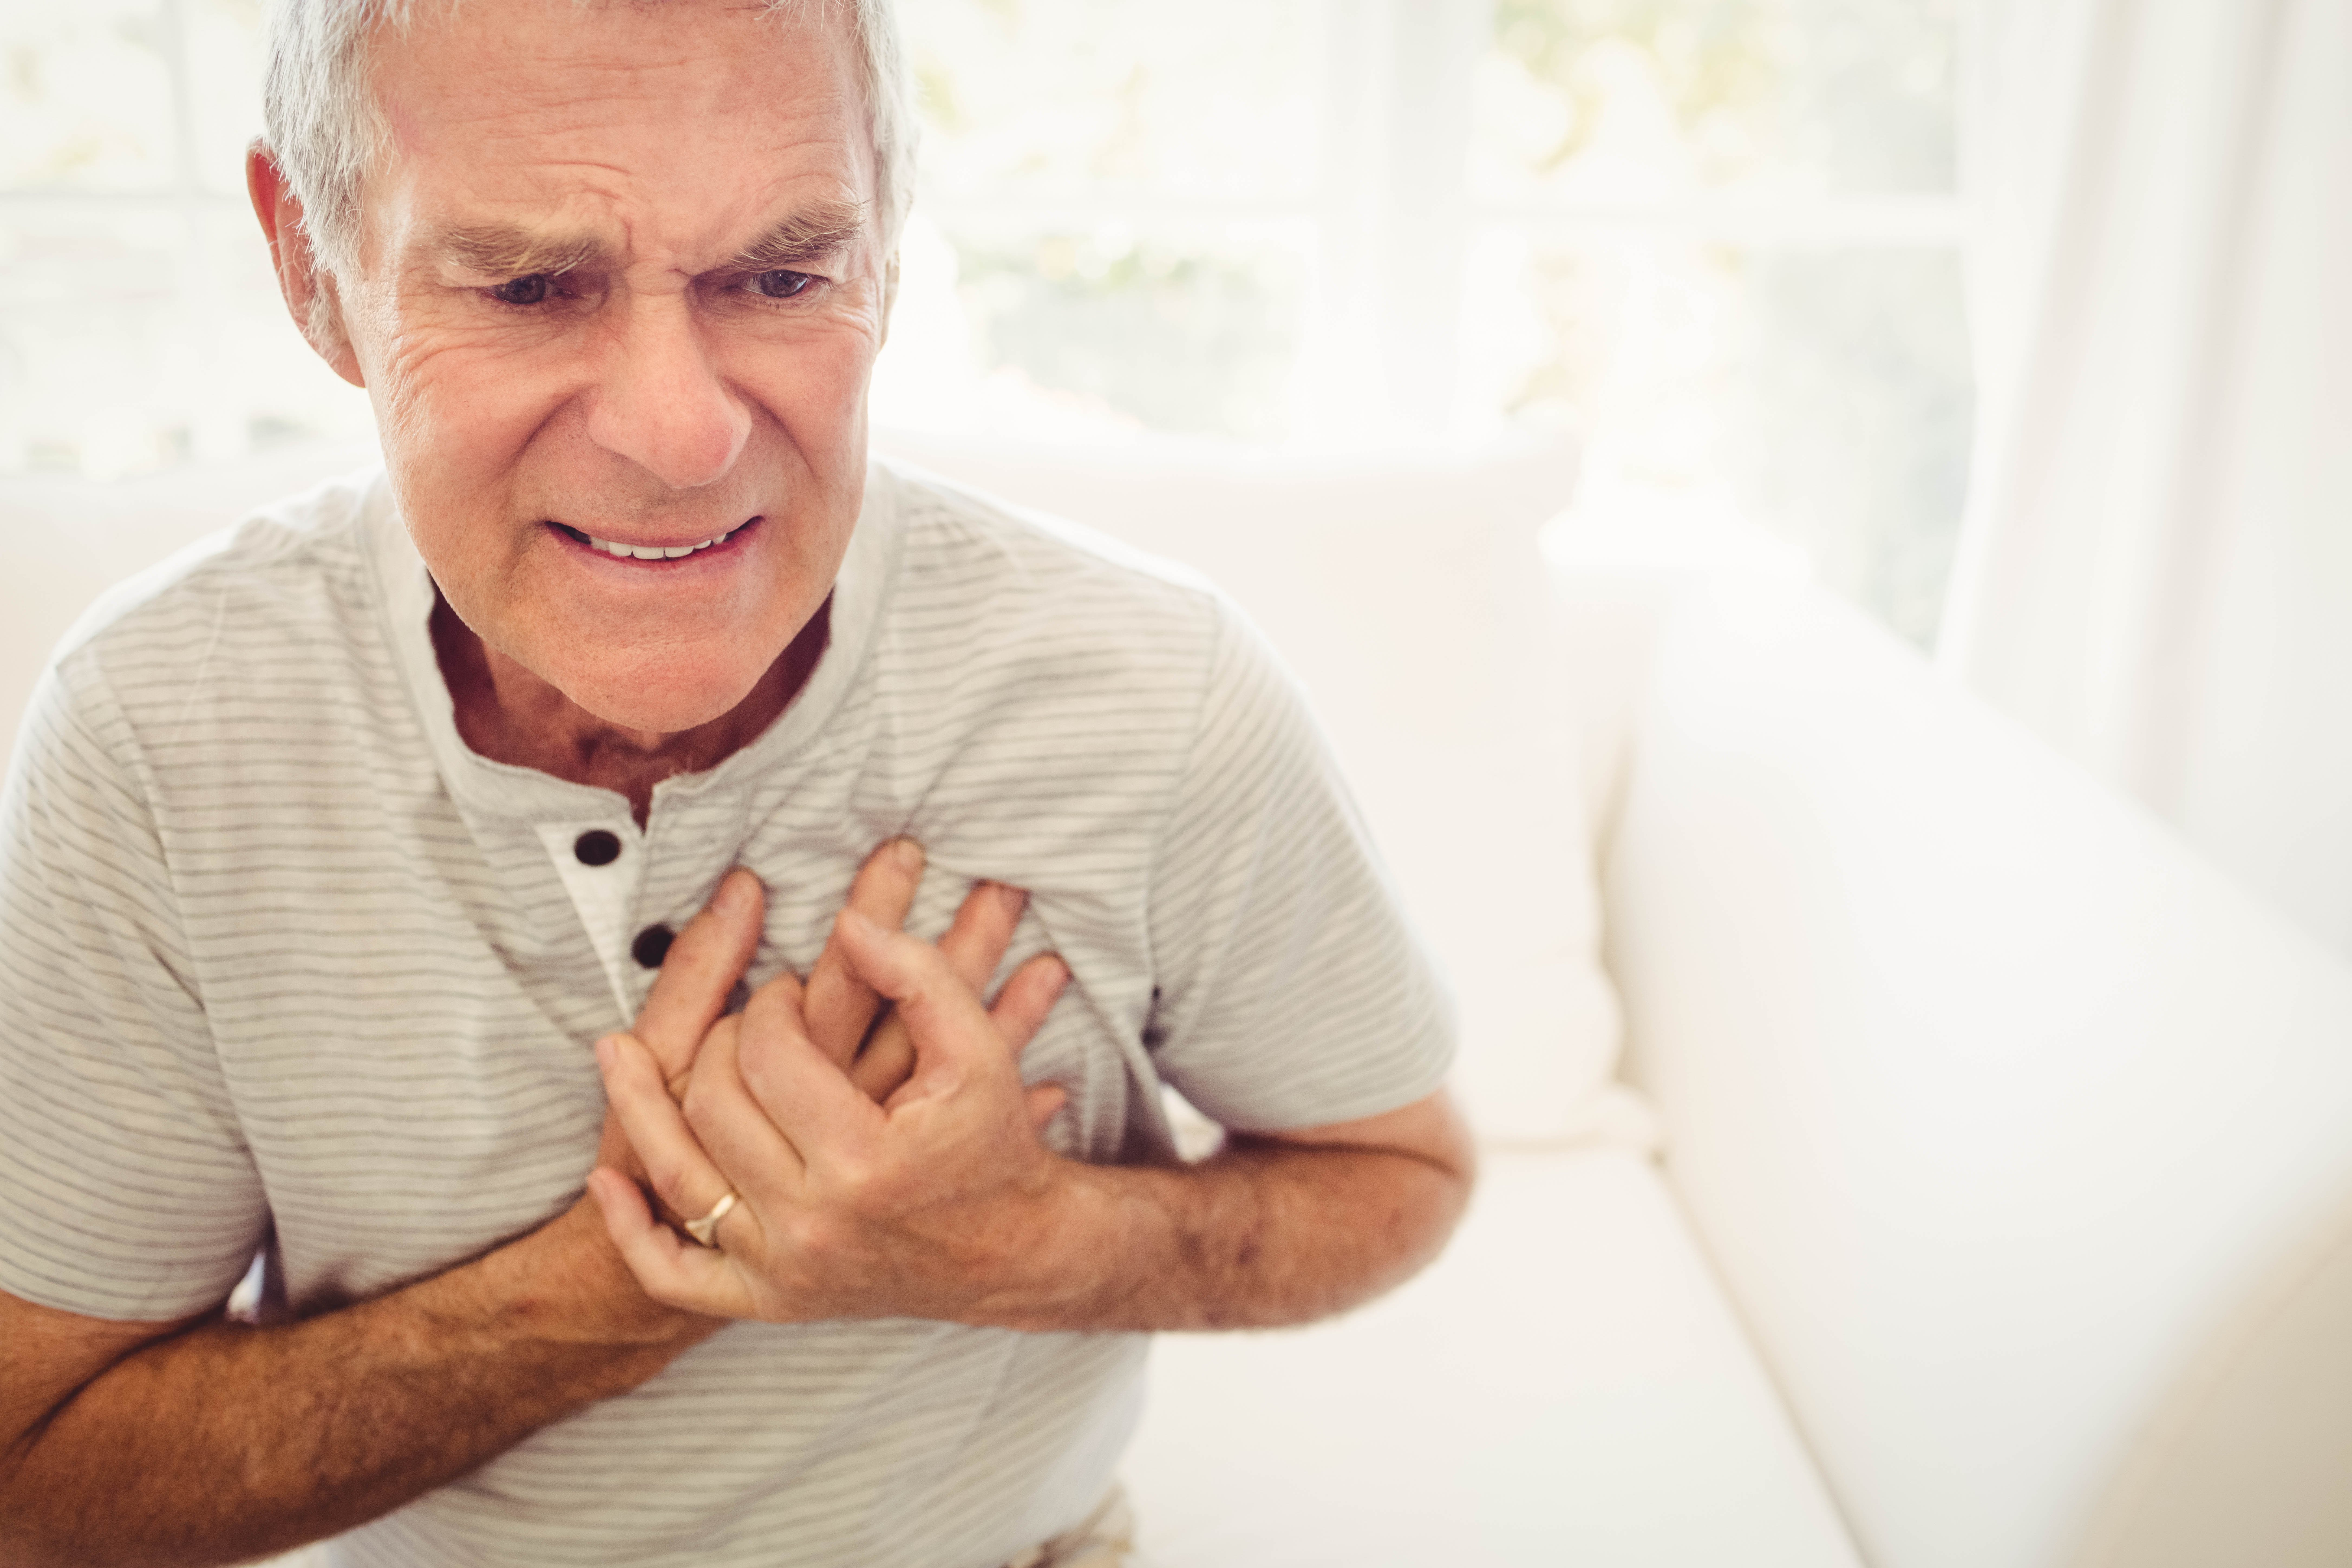 Senior man with pain in the heart in bedroom | Photo: Shutterstock.com